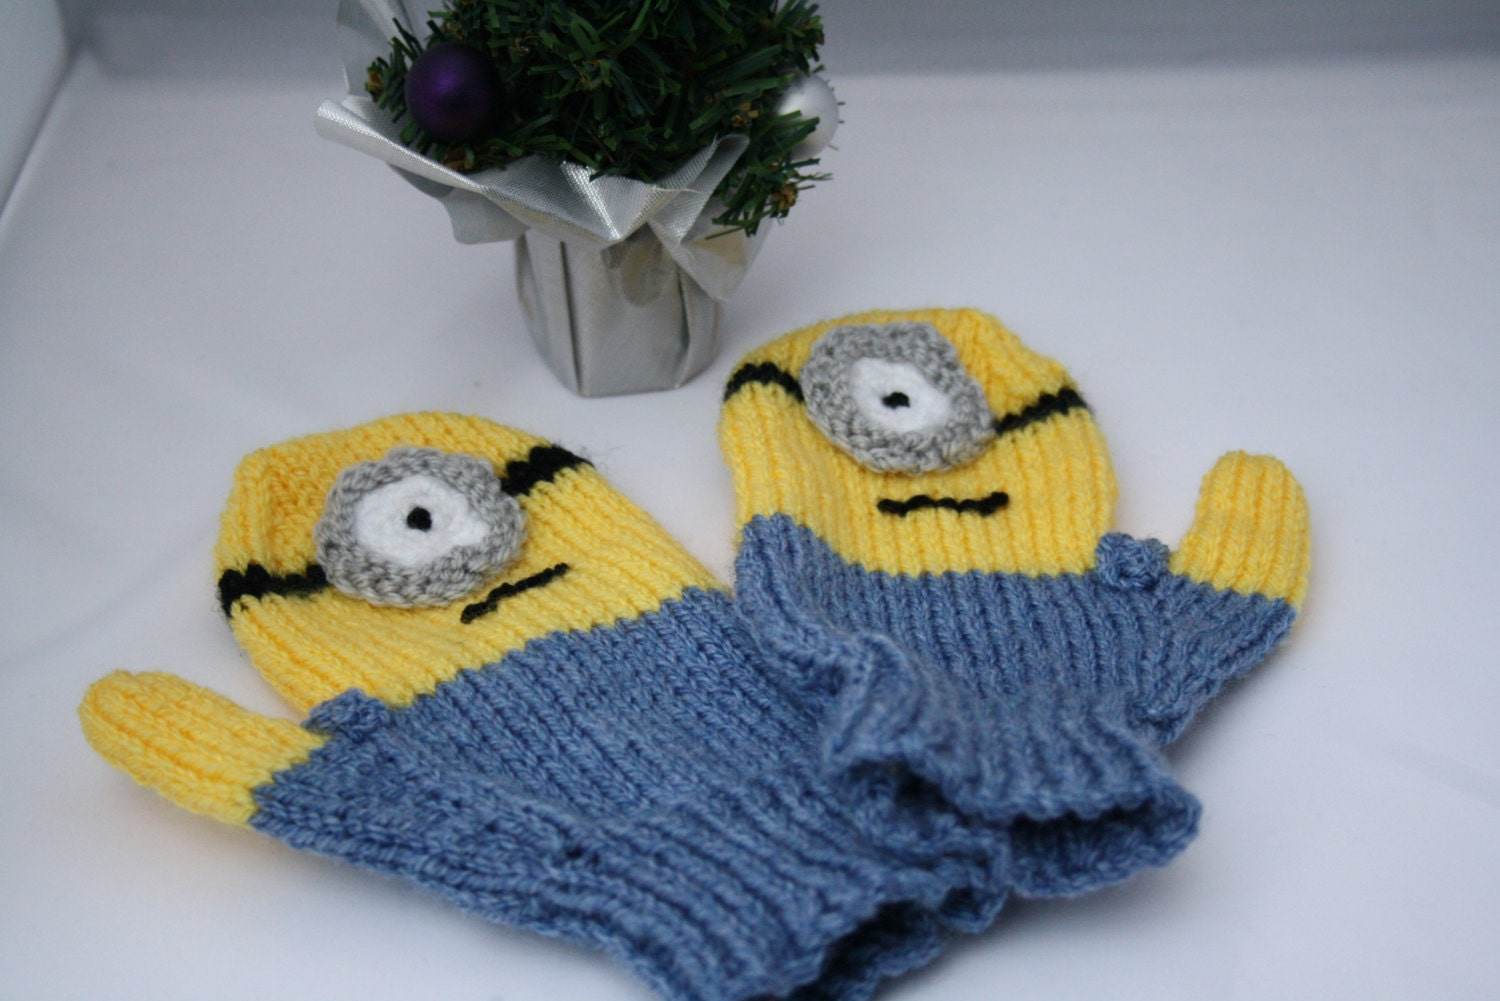 Minion style knitted mittens Minion mitts knitted mittens